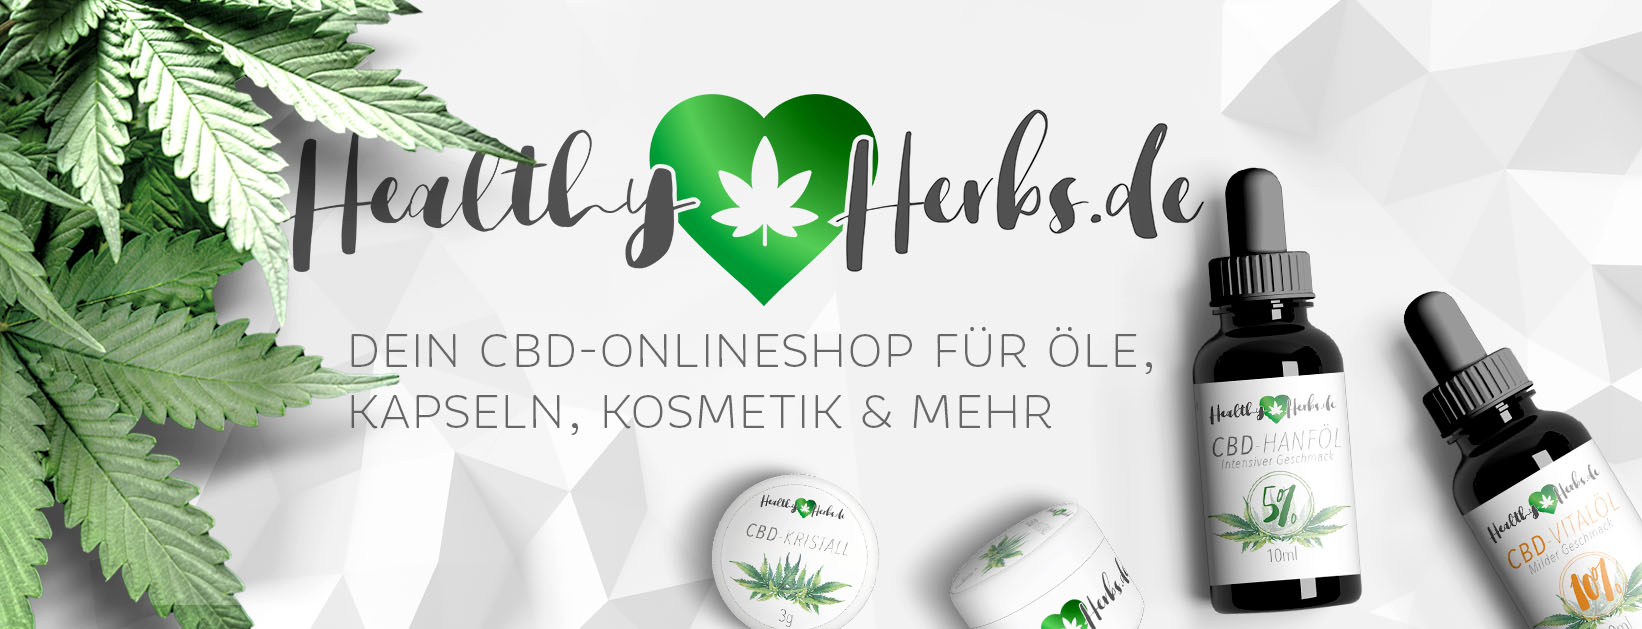 CBD online shop Healthy Herbs